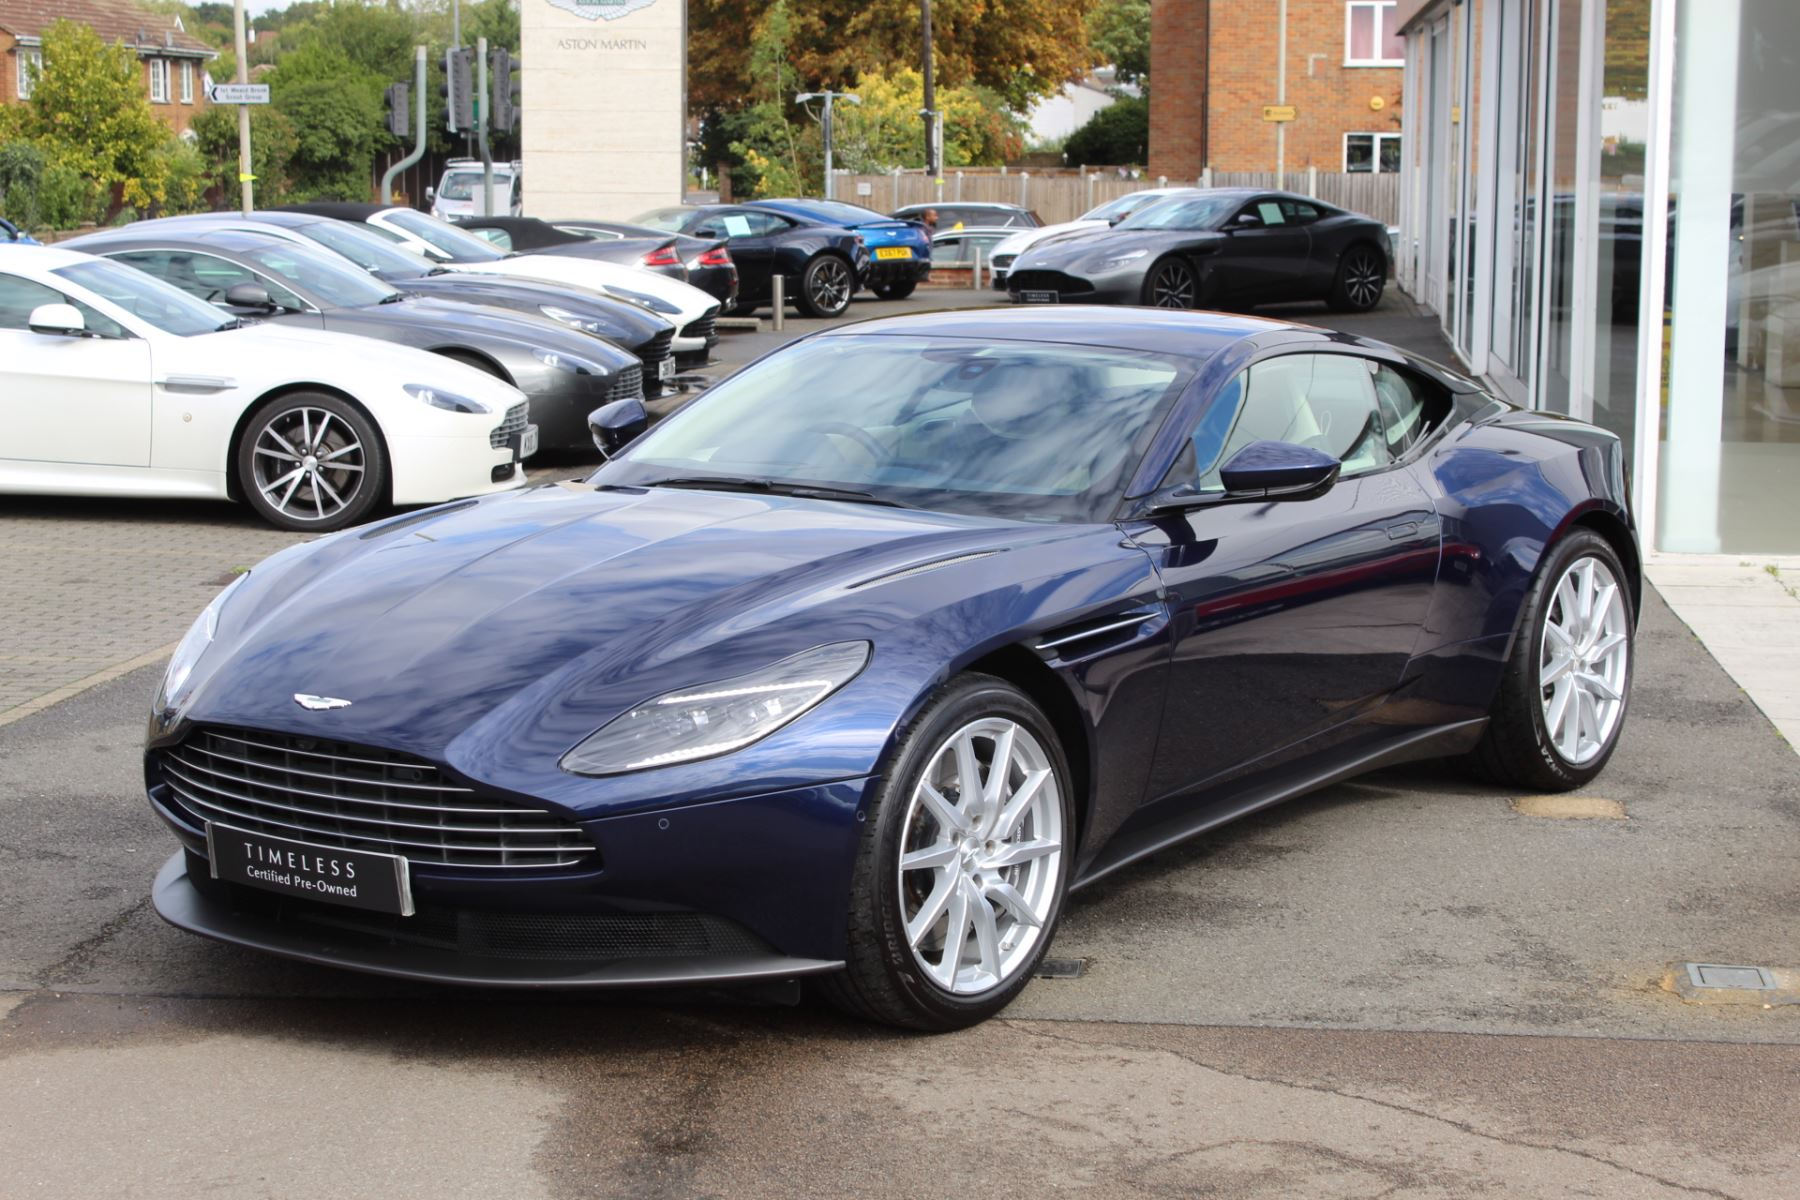 Aston Martin DB11 V8 2dr Touchtronic image 6